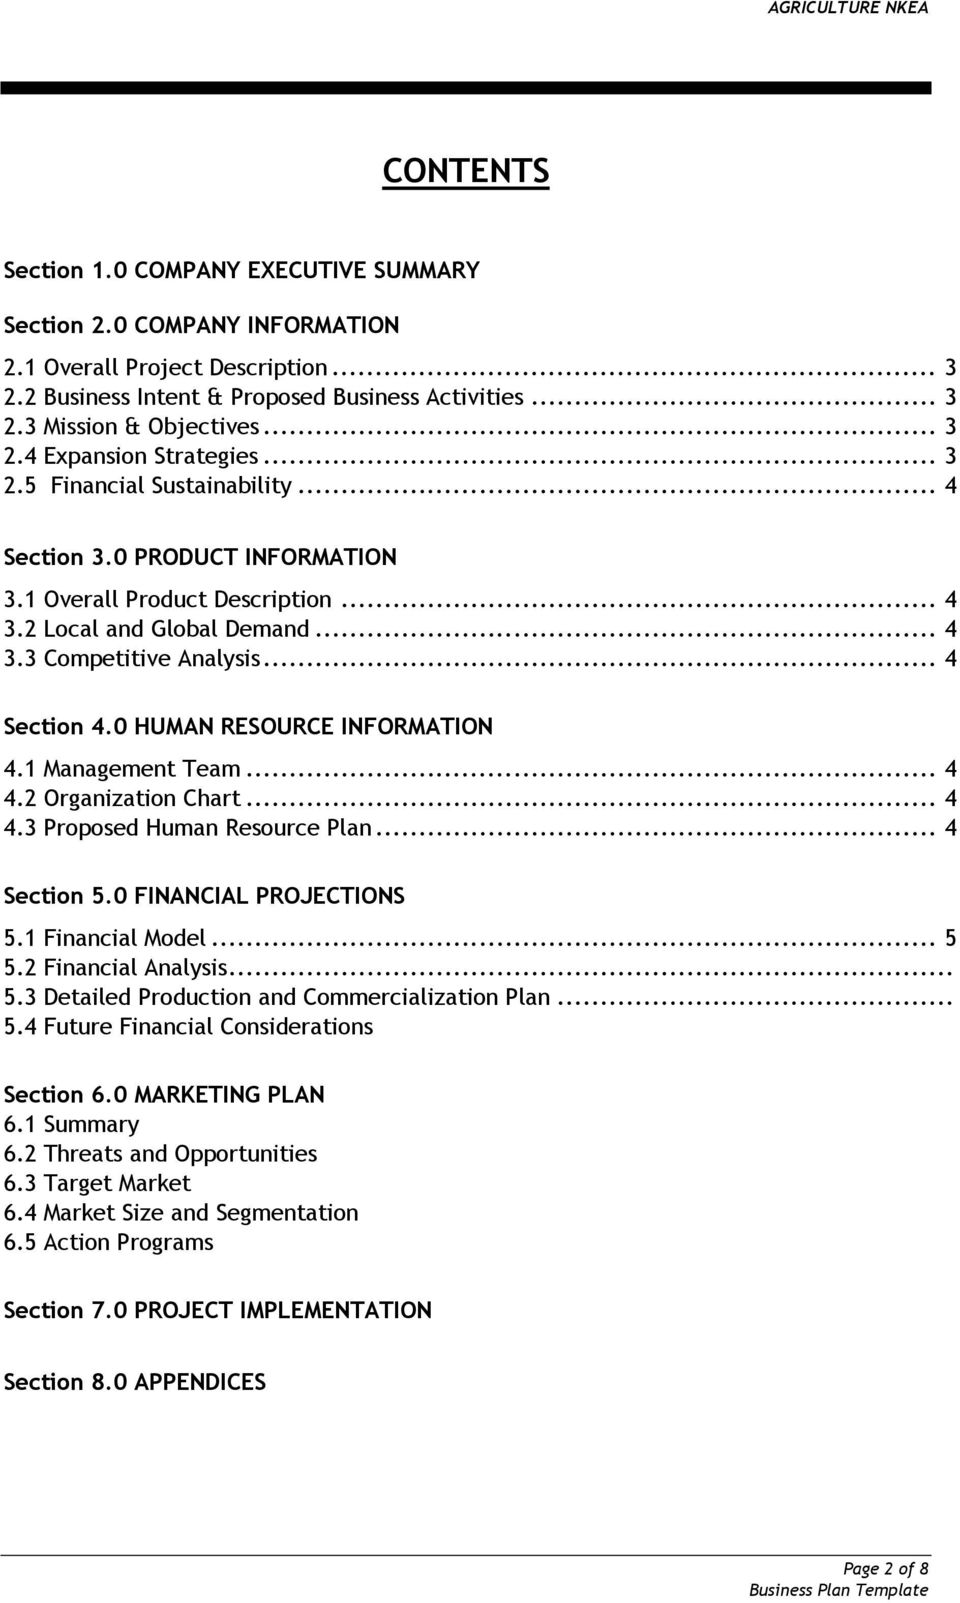 Business Plan Template And Guide For Anchor Companies Pdf Free Download